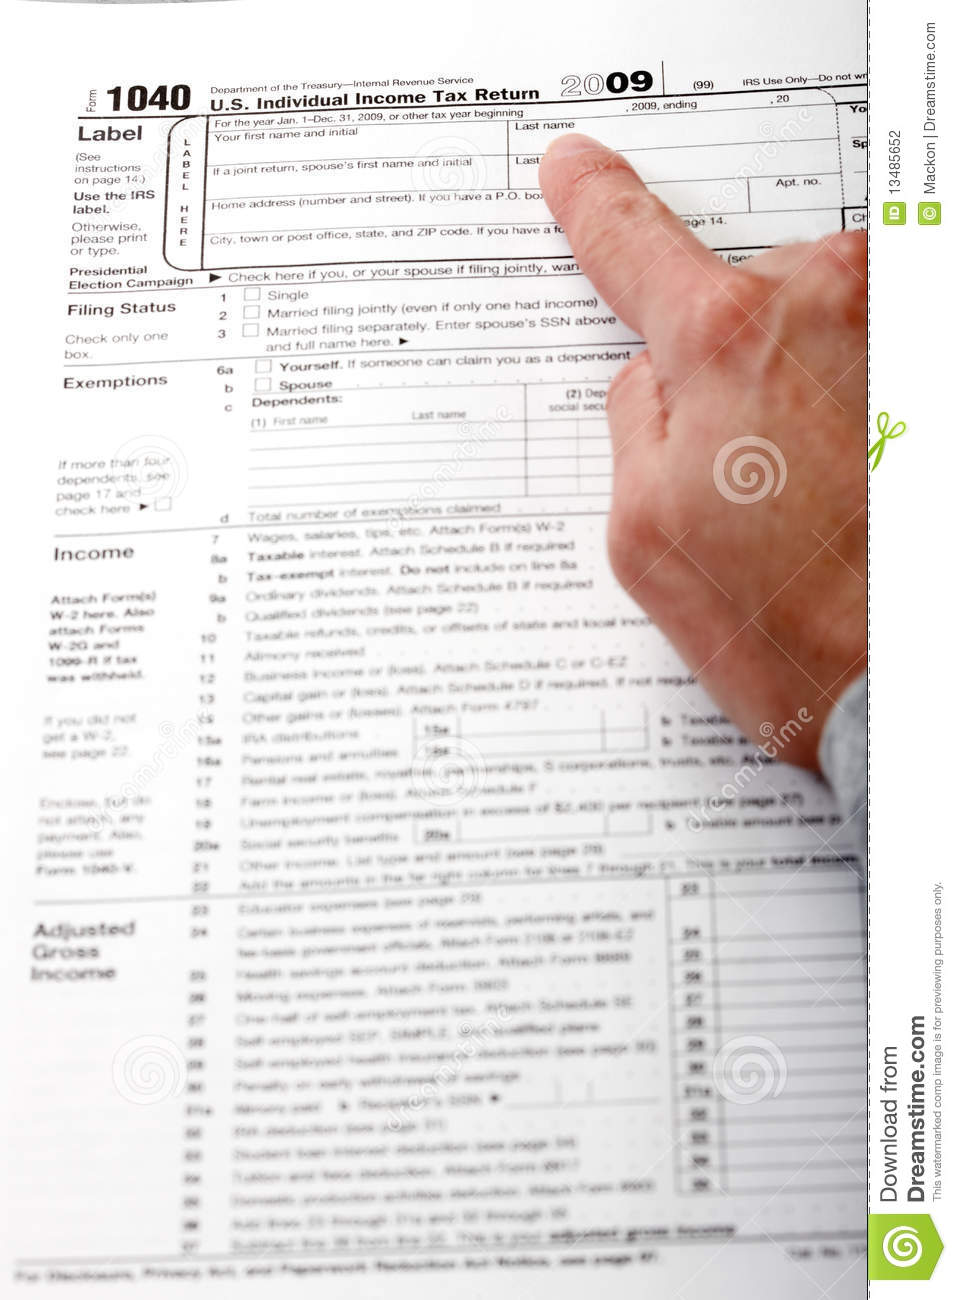 Form 1040 income tax return editorial photography image for 1040 instructions tax table 2010